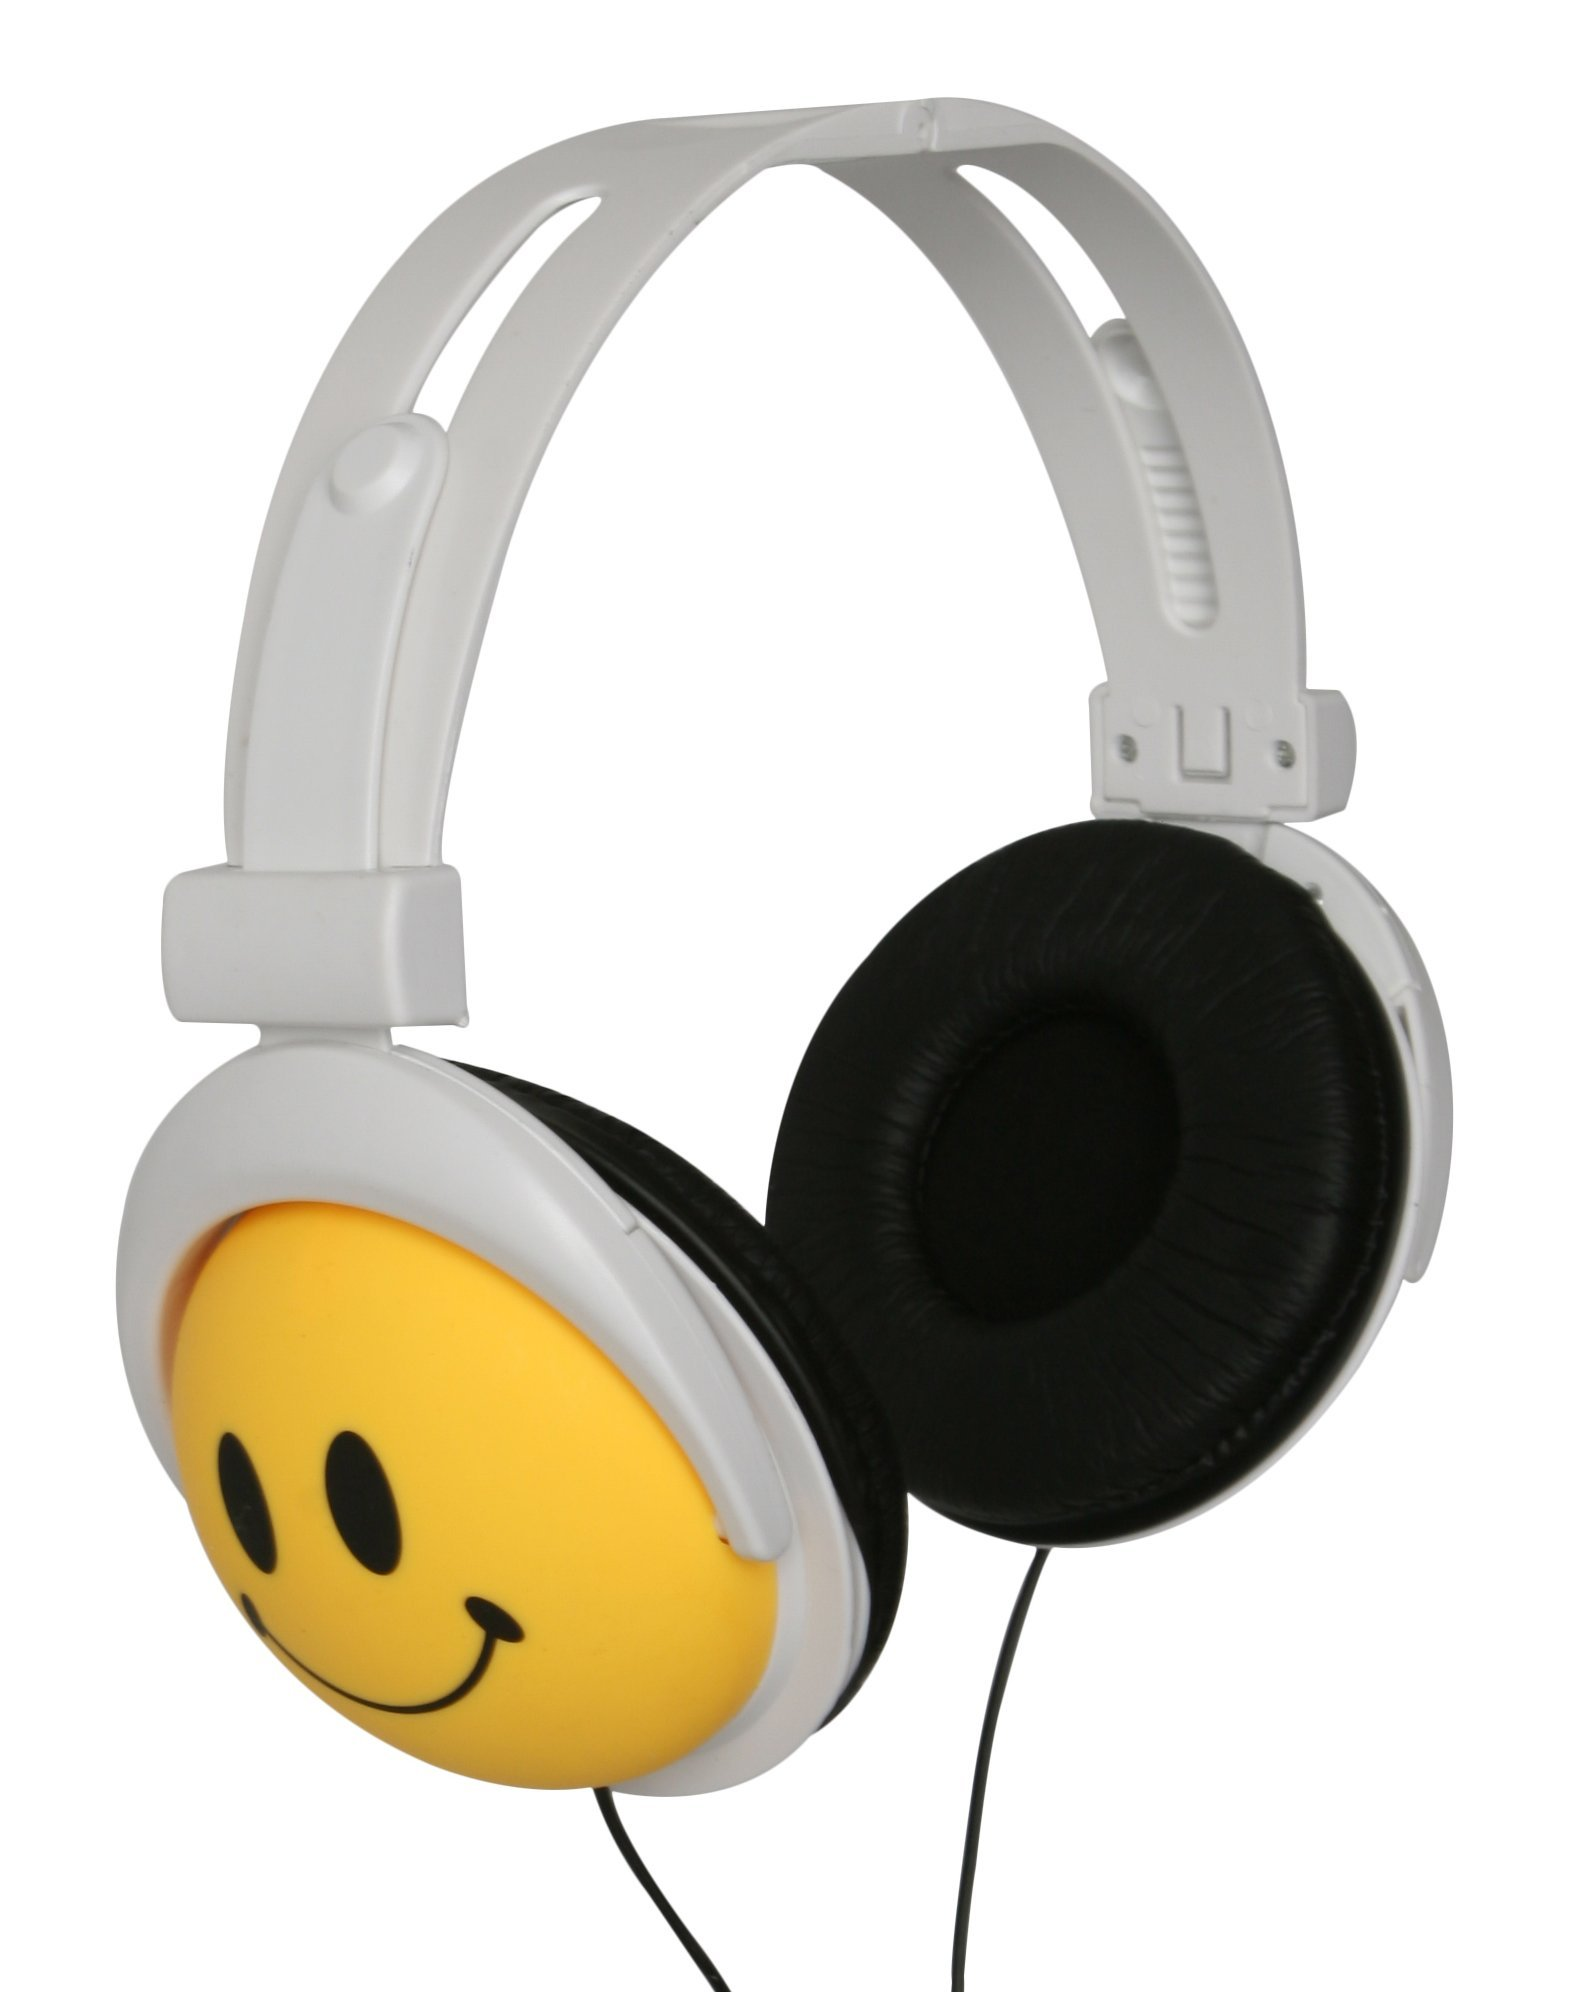 Original AUTHENTIC HAPPY CANZ Smiley Face Emoji Foldable Fully Adjustable Over-Ear Padded Headphones by Roxant